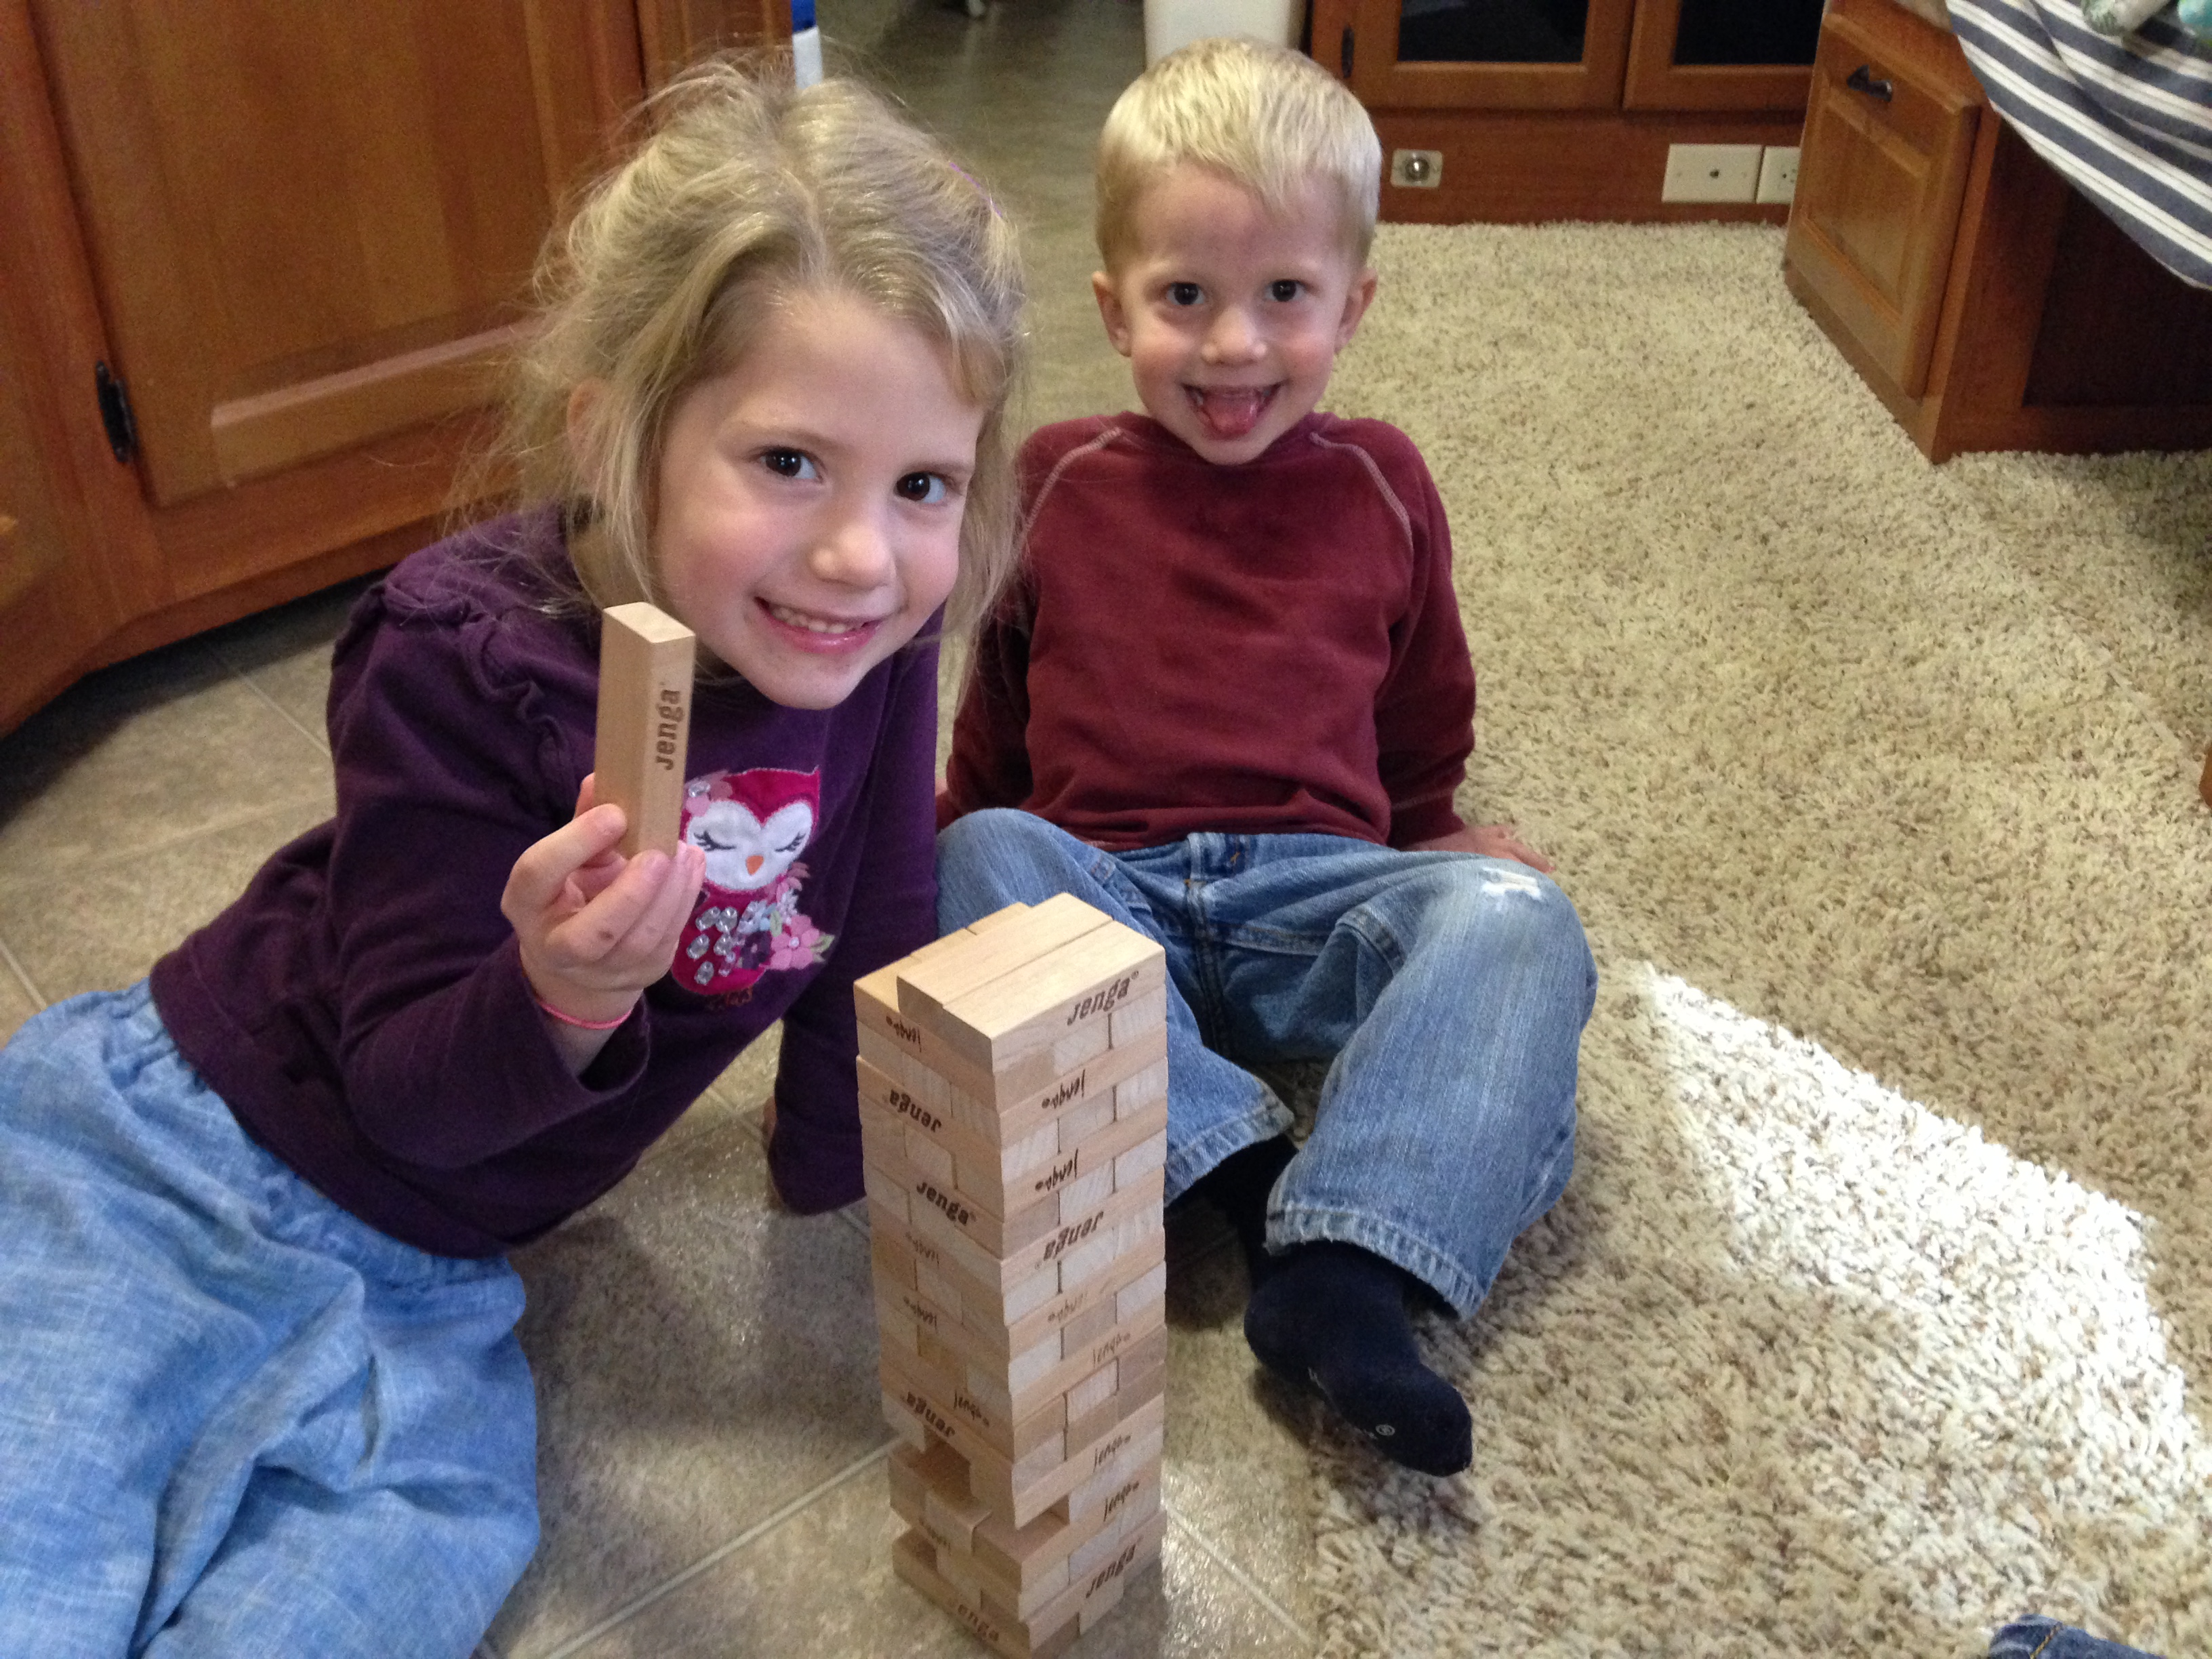 I got to pay Jenga with these 2 cute kids!